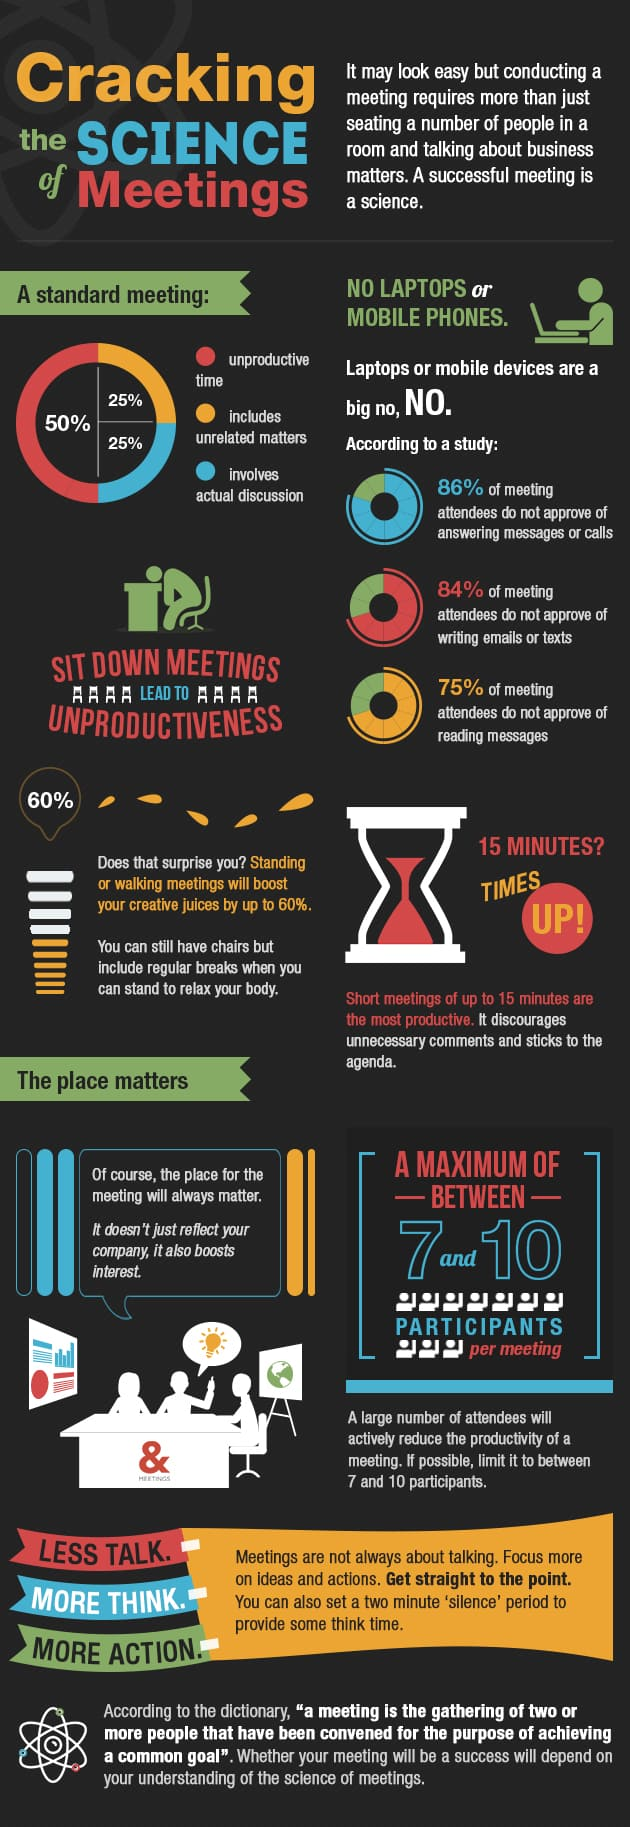 Cracking the science of meetings